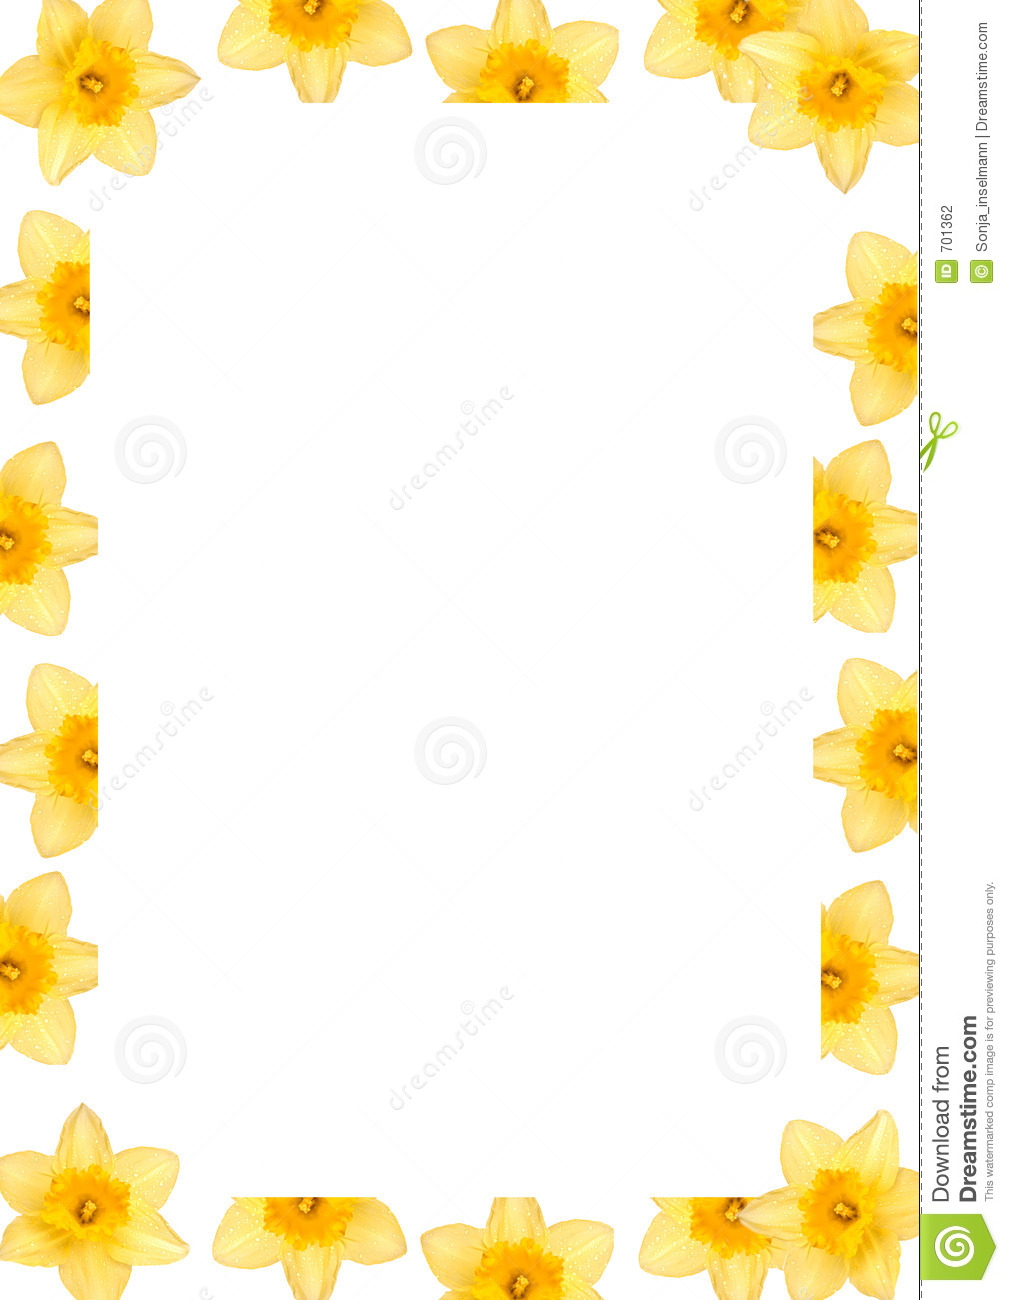 Tissue Paper Flowers Craft  Enchanted Learning Software